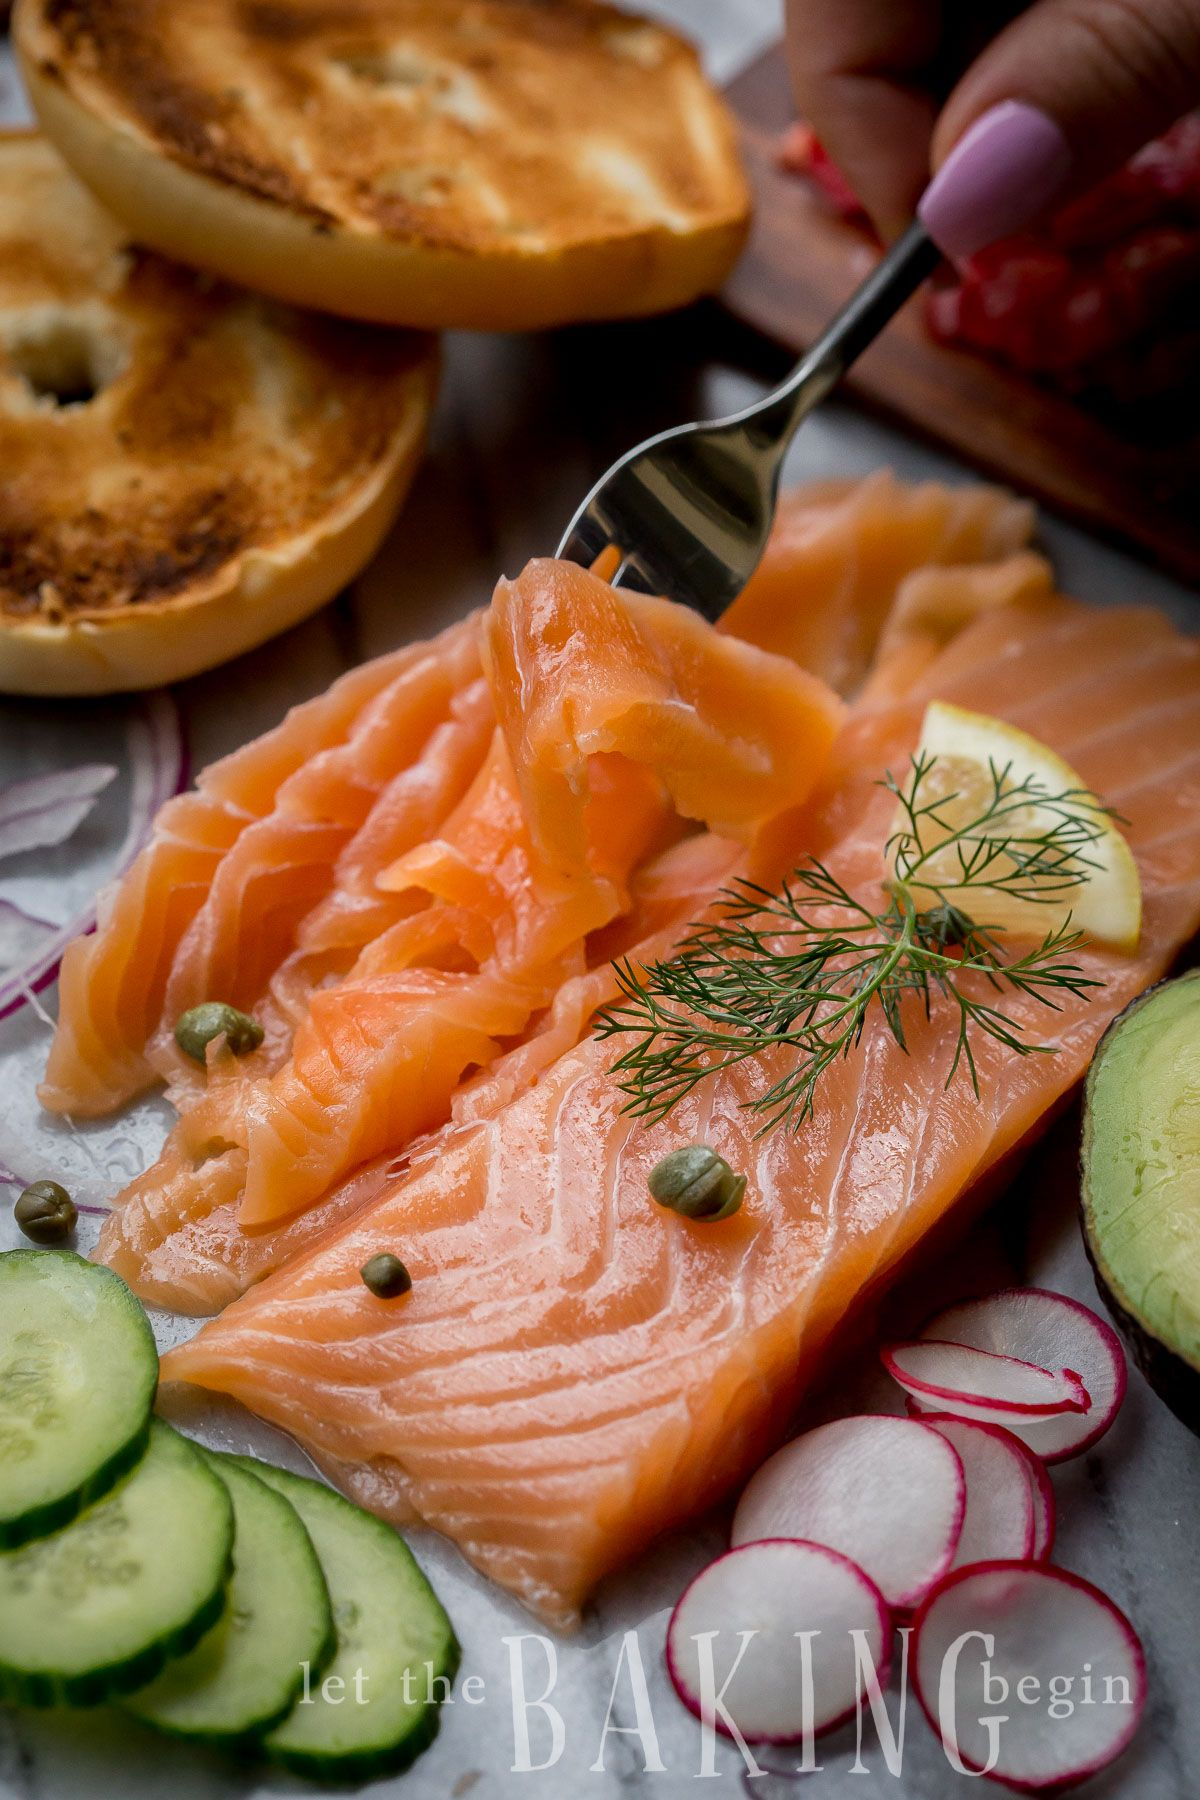 This Cold Smoked Salmon Recipe Makes The Perfect Appetizer Or Dinner Here S How To Make It With No S Smoked Salmon Recipes Salmon Recipes Salmon Glaze Recipes